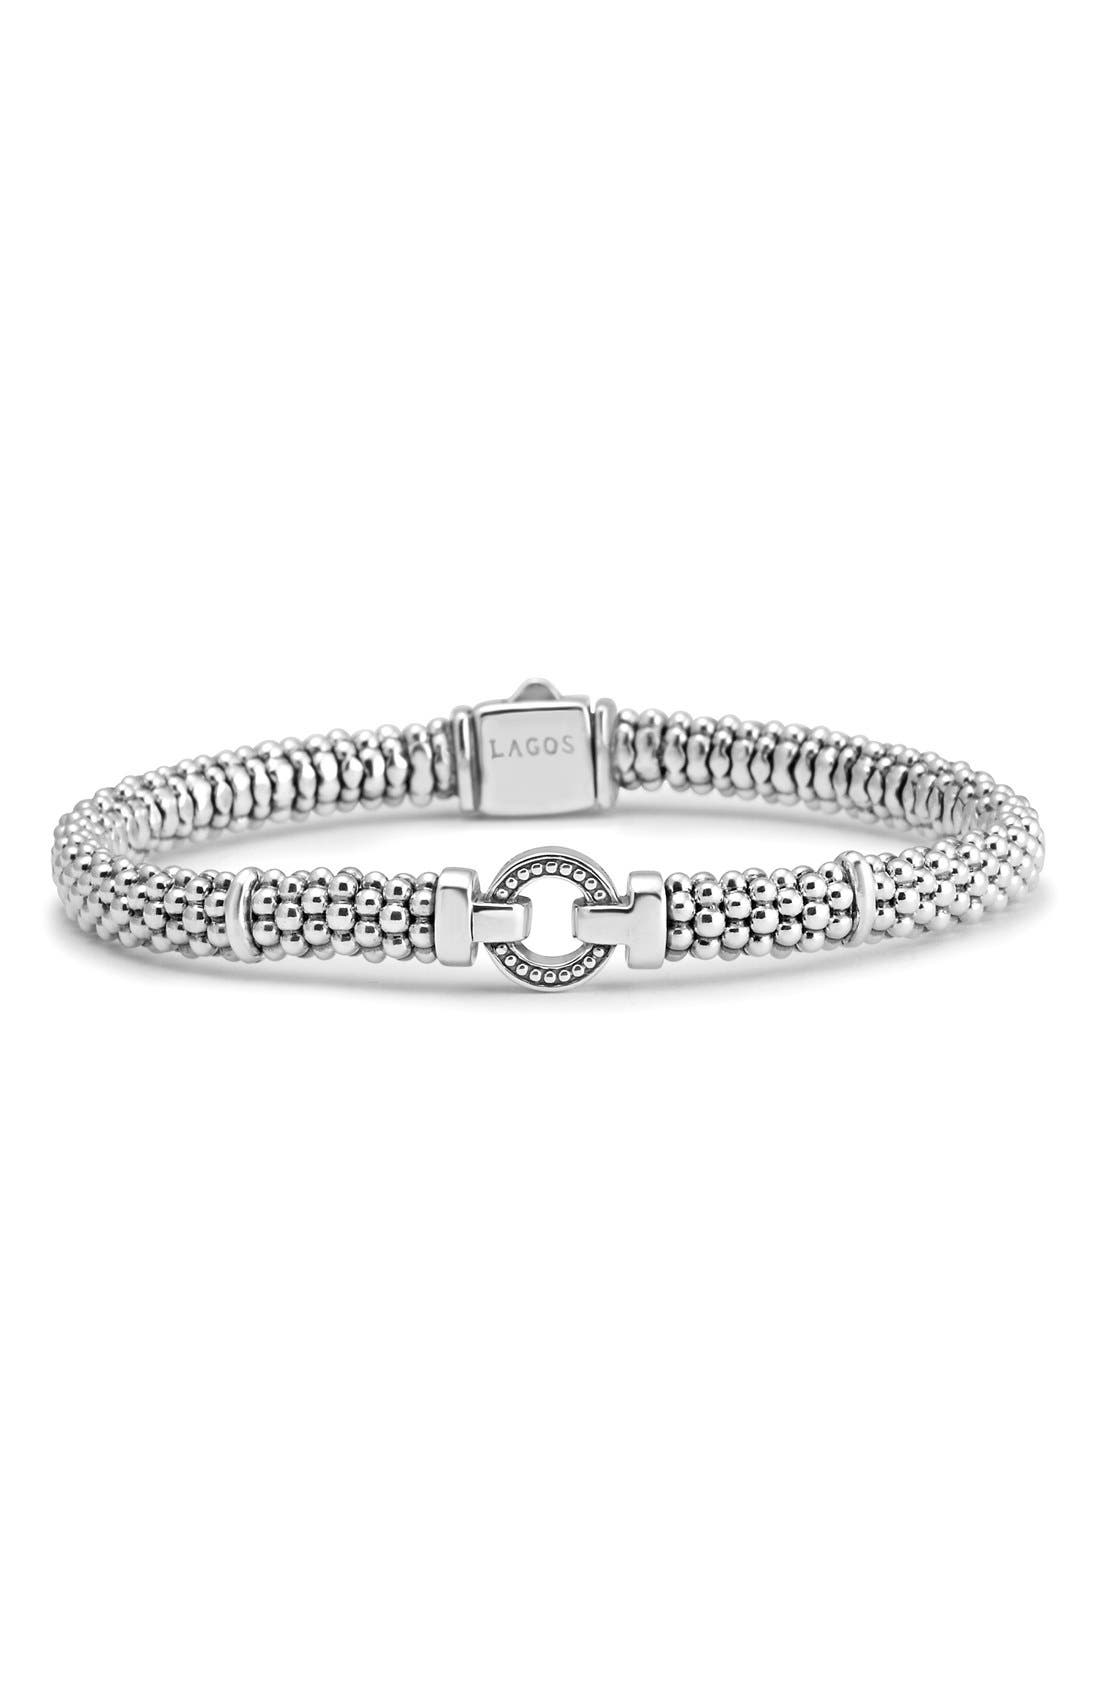 LAGOS Enso Boxed Circle Station Caviar Rope Bracelet, Main, color, STERLING SILVER